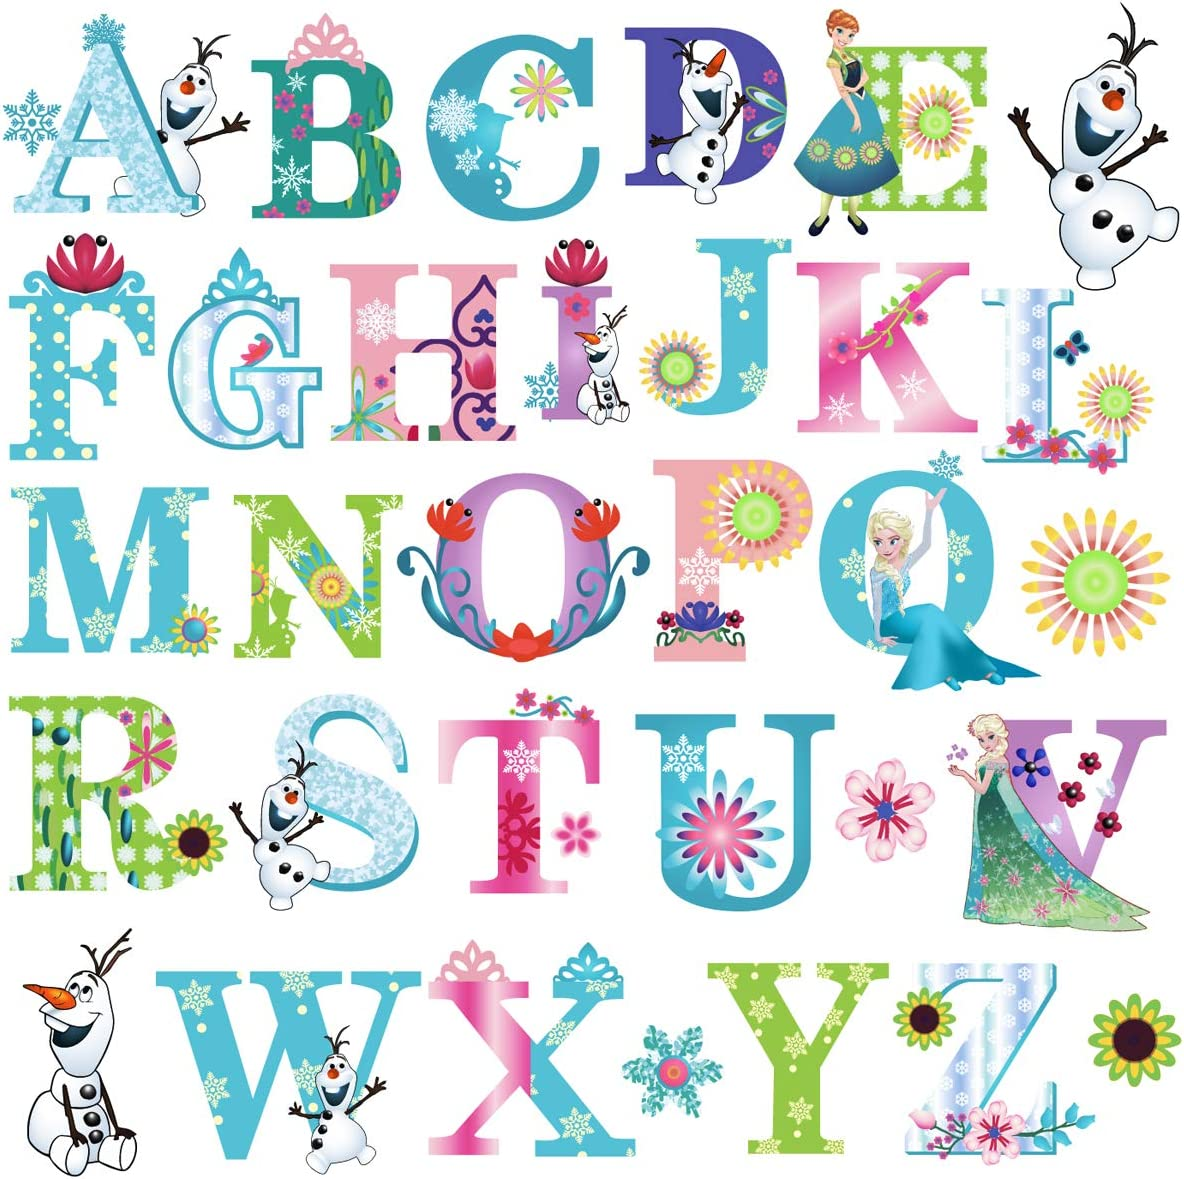 DEKOSH Frozen Theme Alphabet Wall Stickers for Baby Girl Nursery | Peel & Stick Decorative Girl Nursery Wall Decals for Kids Playroom, Baby Bedroom